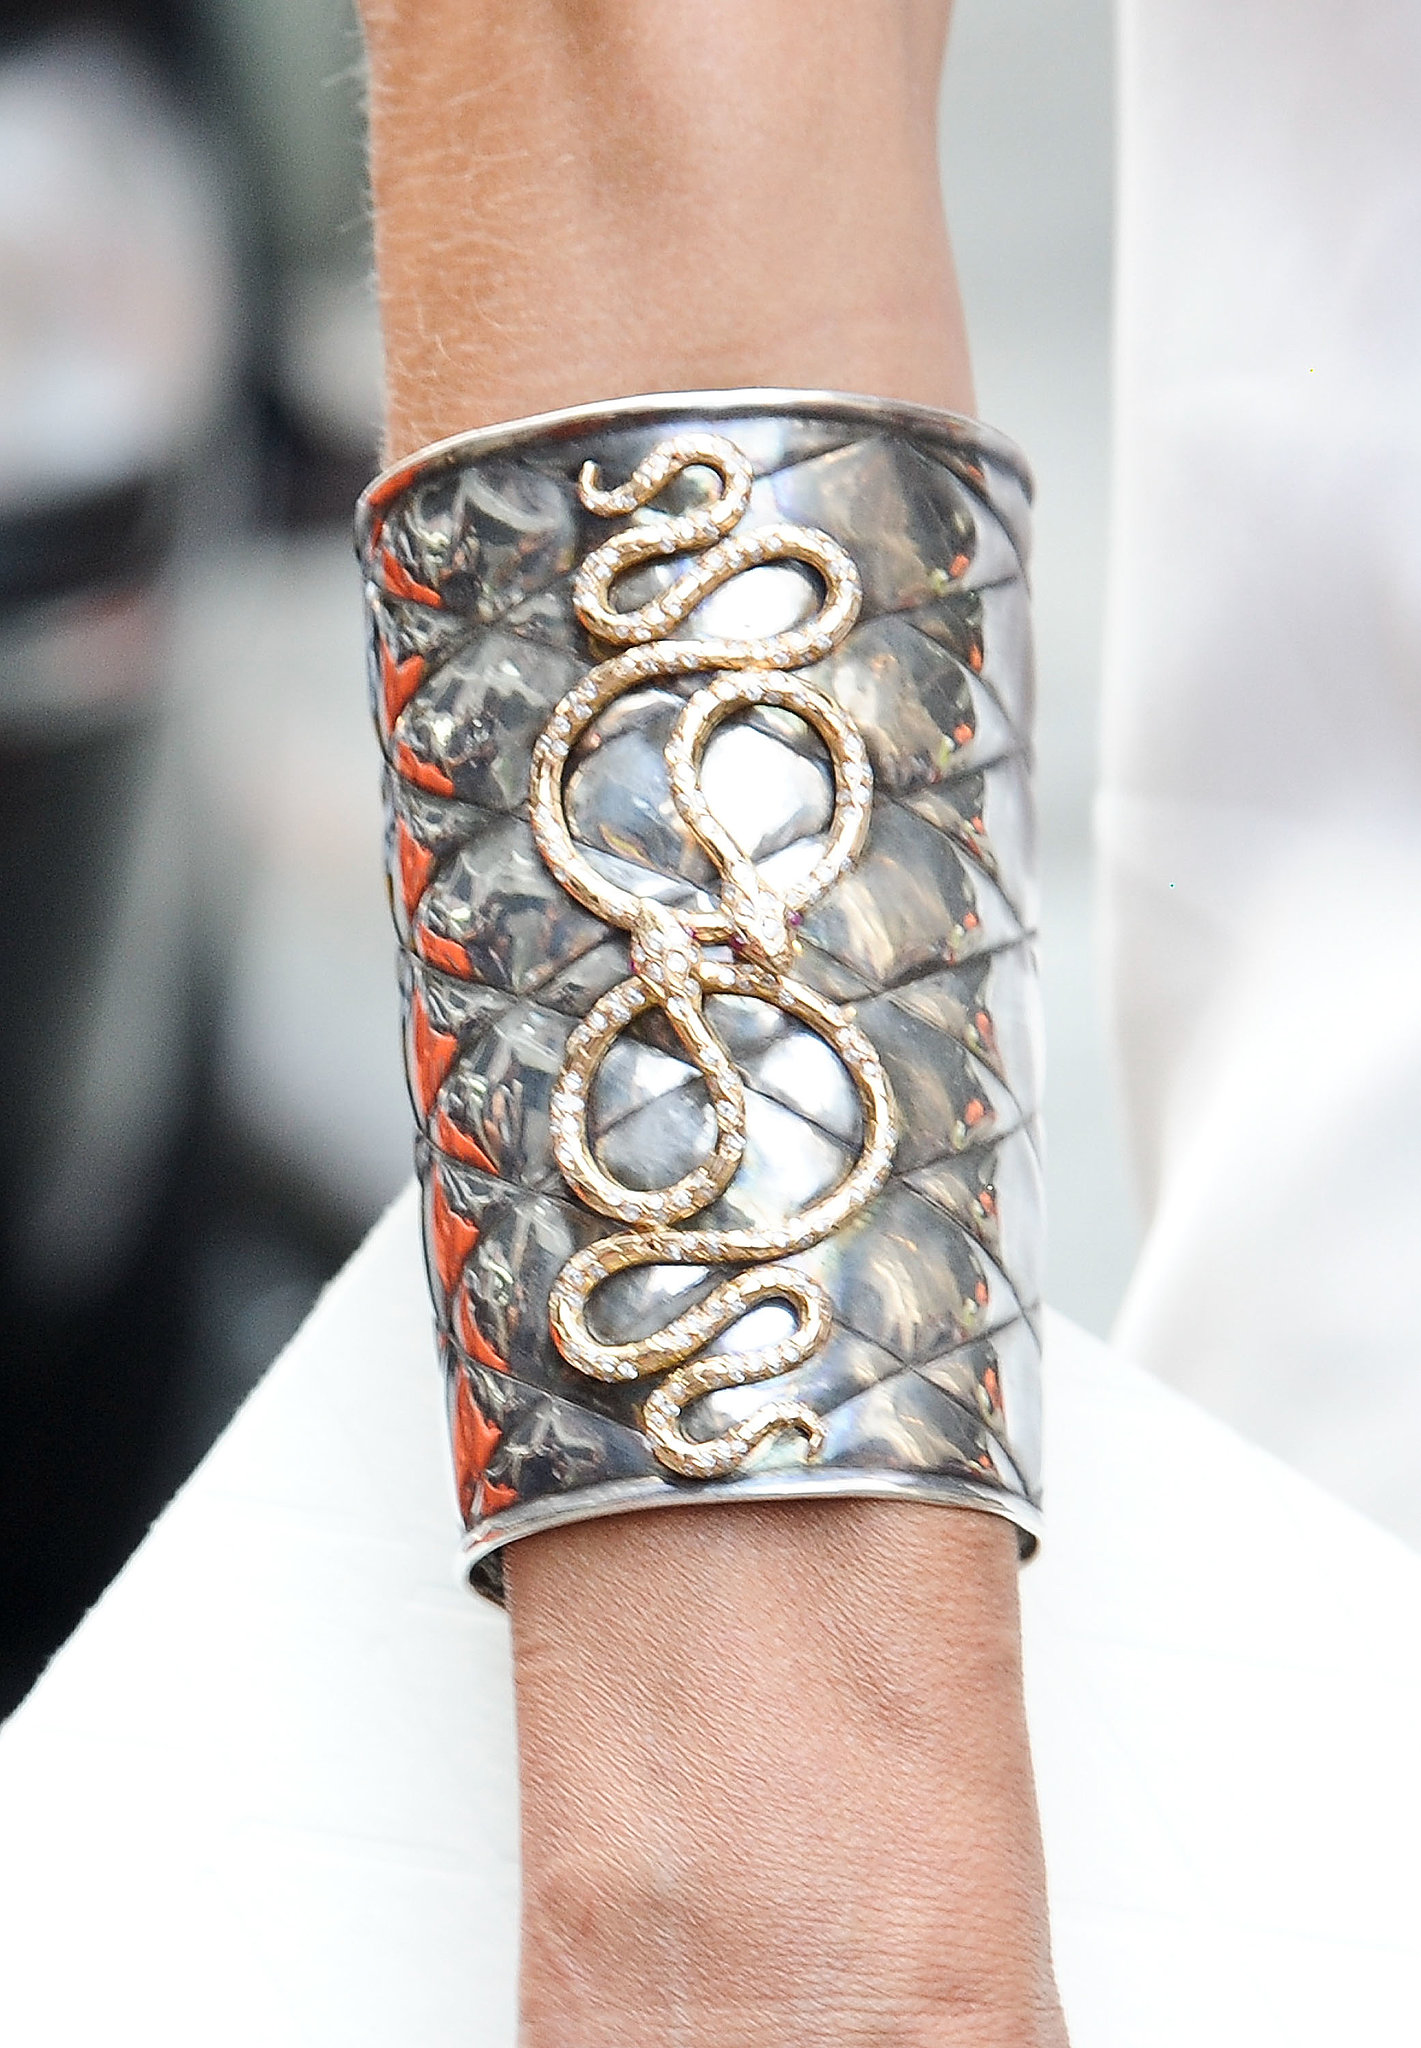 Armed with a gorgeous cuff.